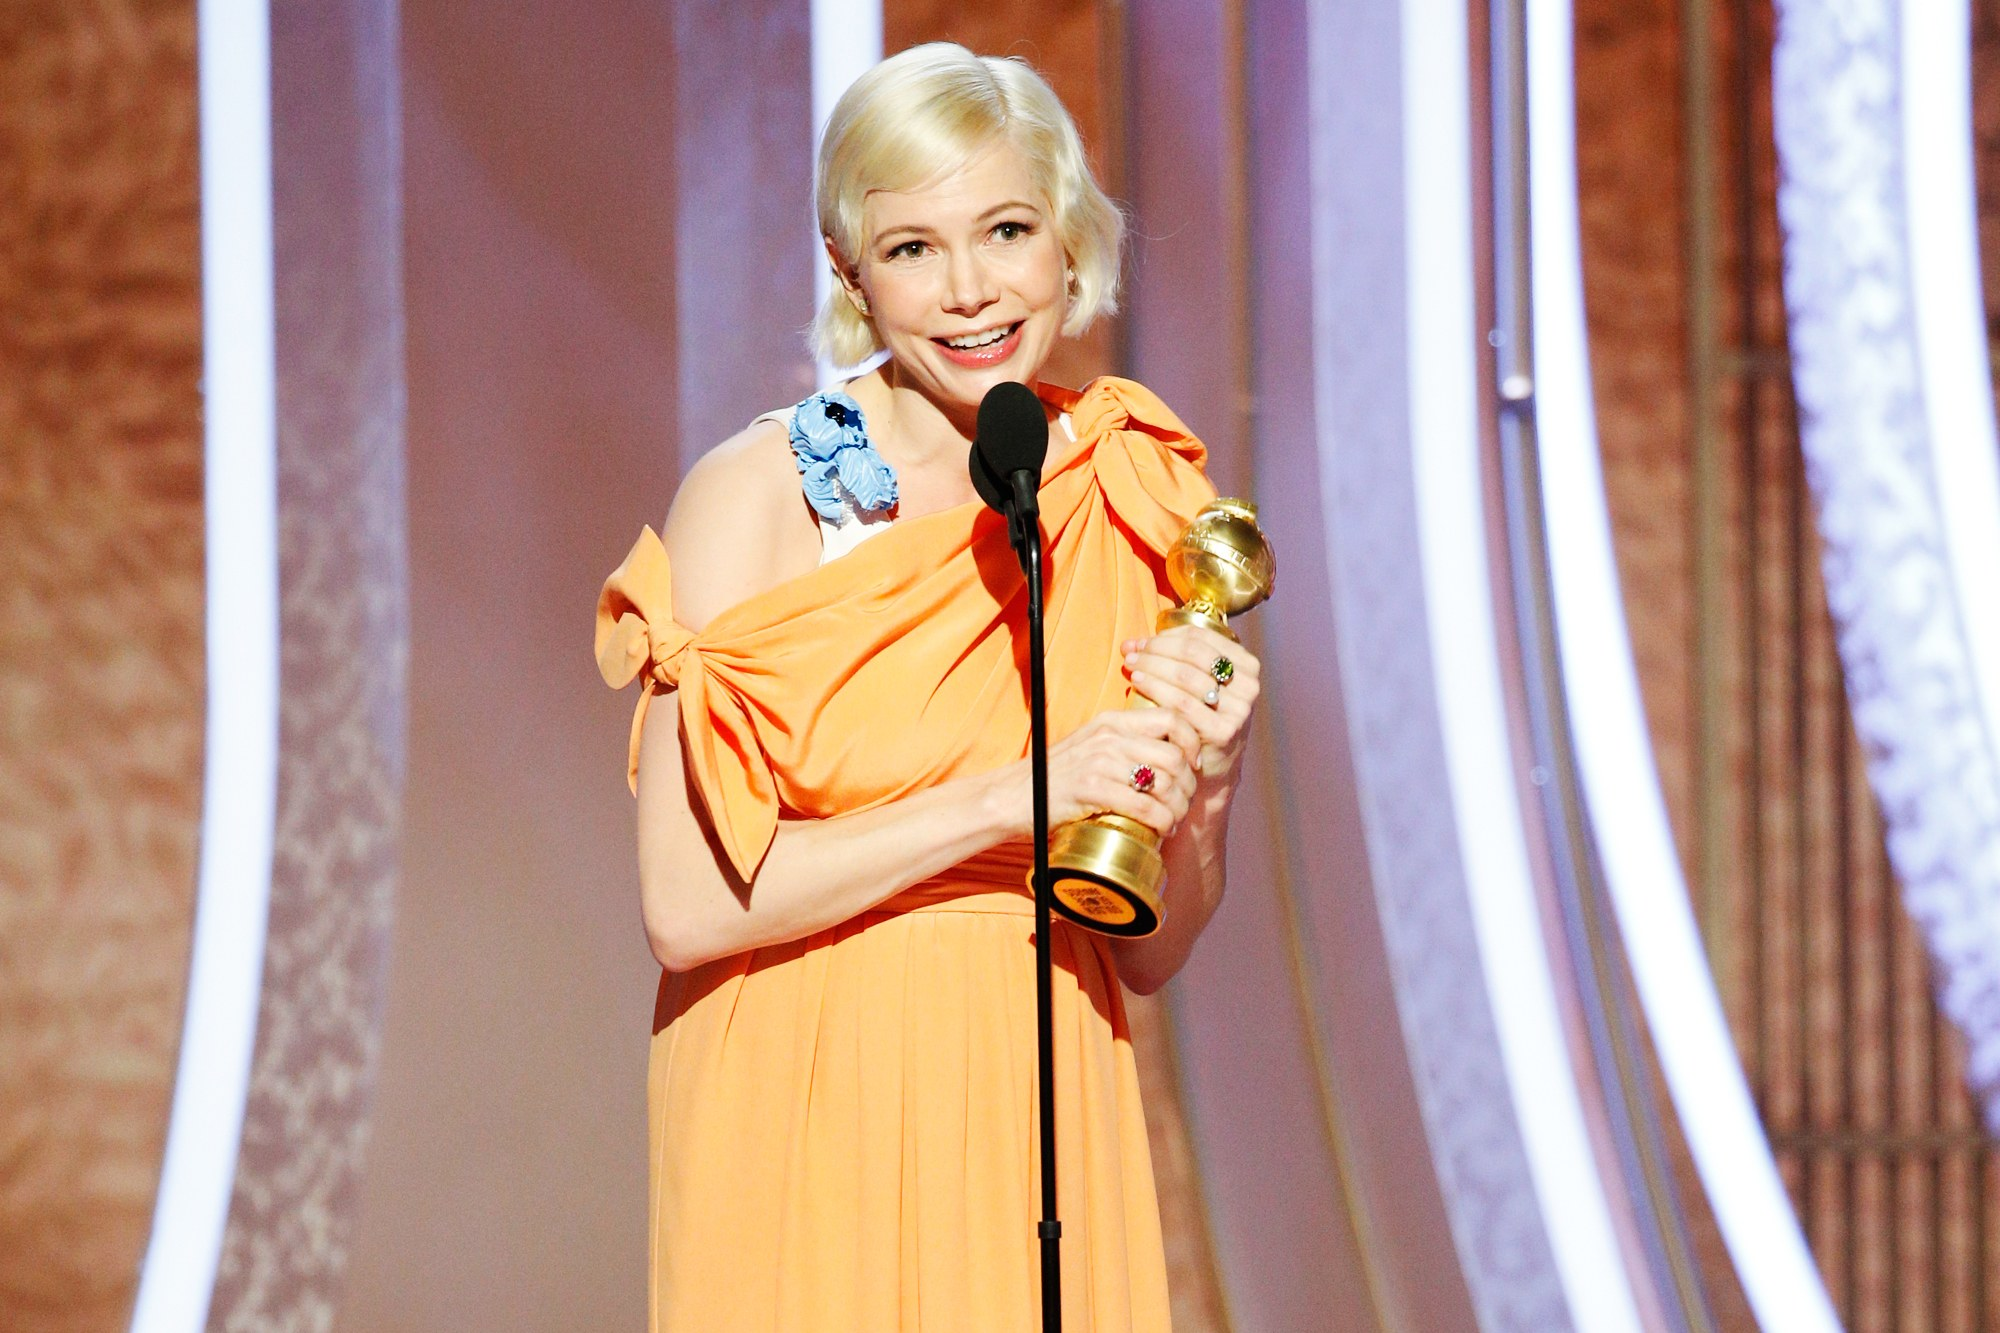 michelle williams golden globes 1 - 7 Lovely Moments of the Golden Globes